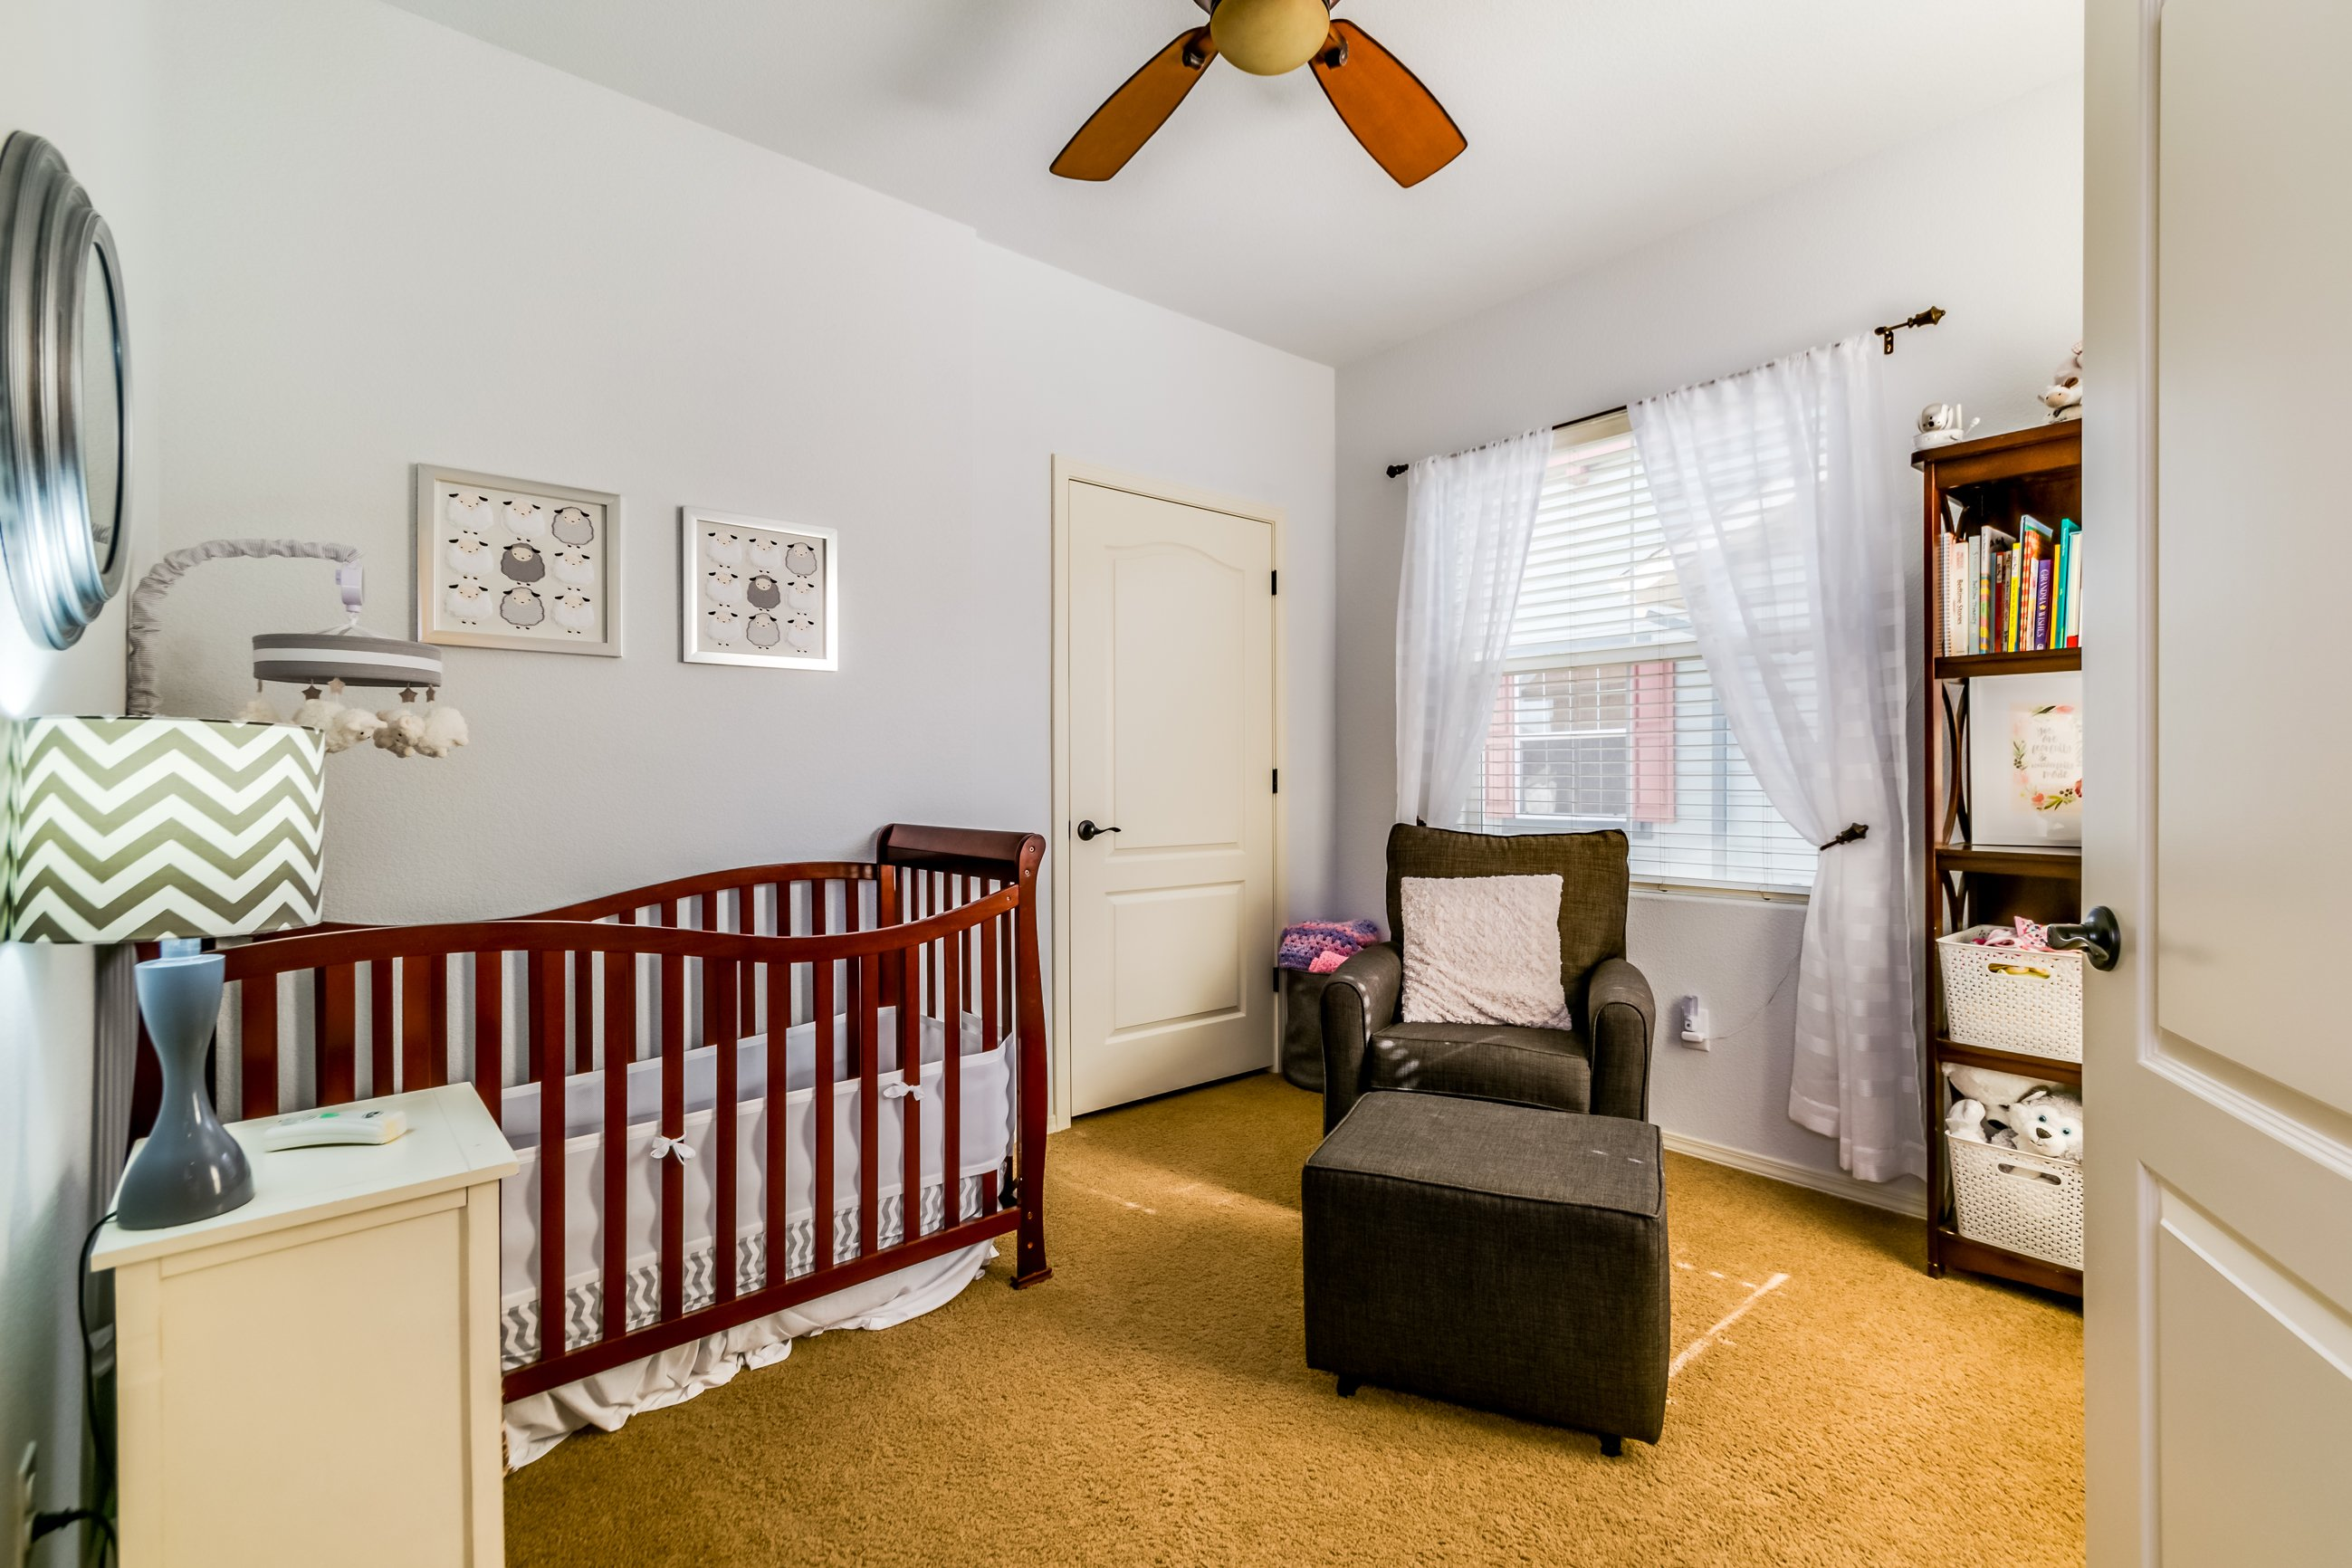 Gold Hill Mesa condo for sale, picture of bedroom being used as a nursery